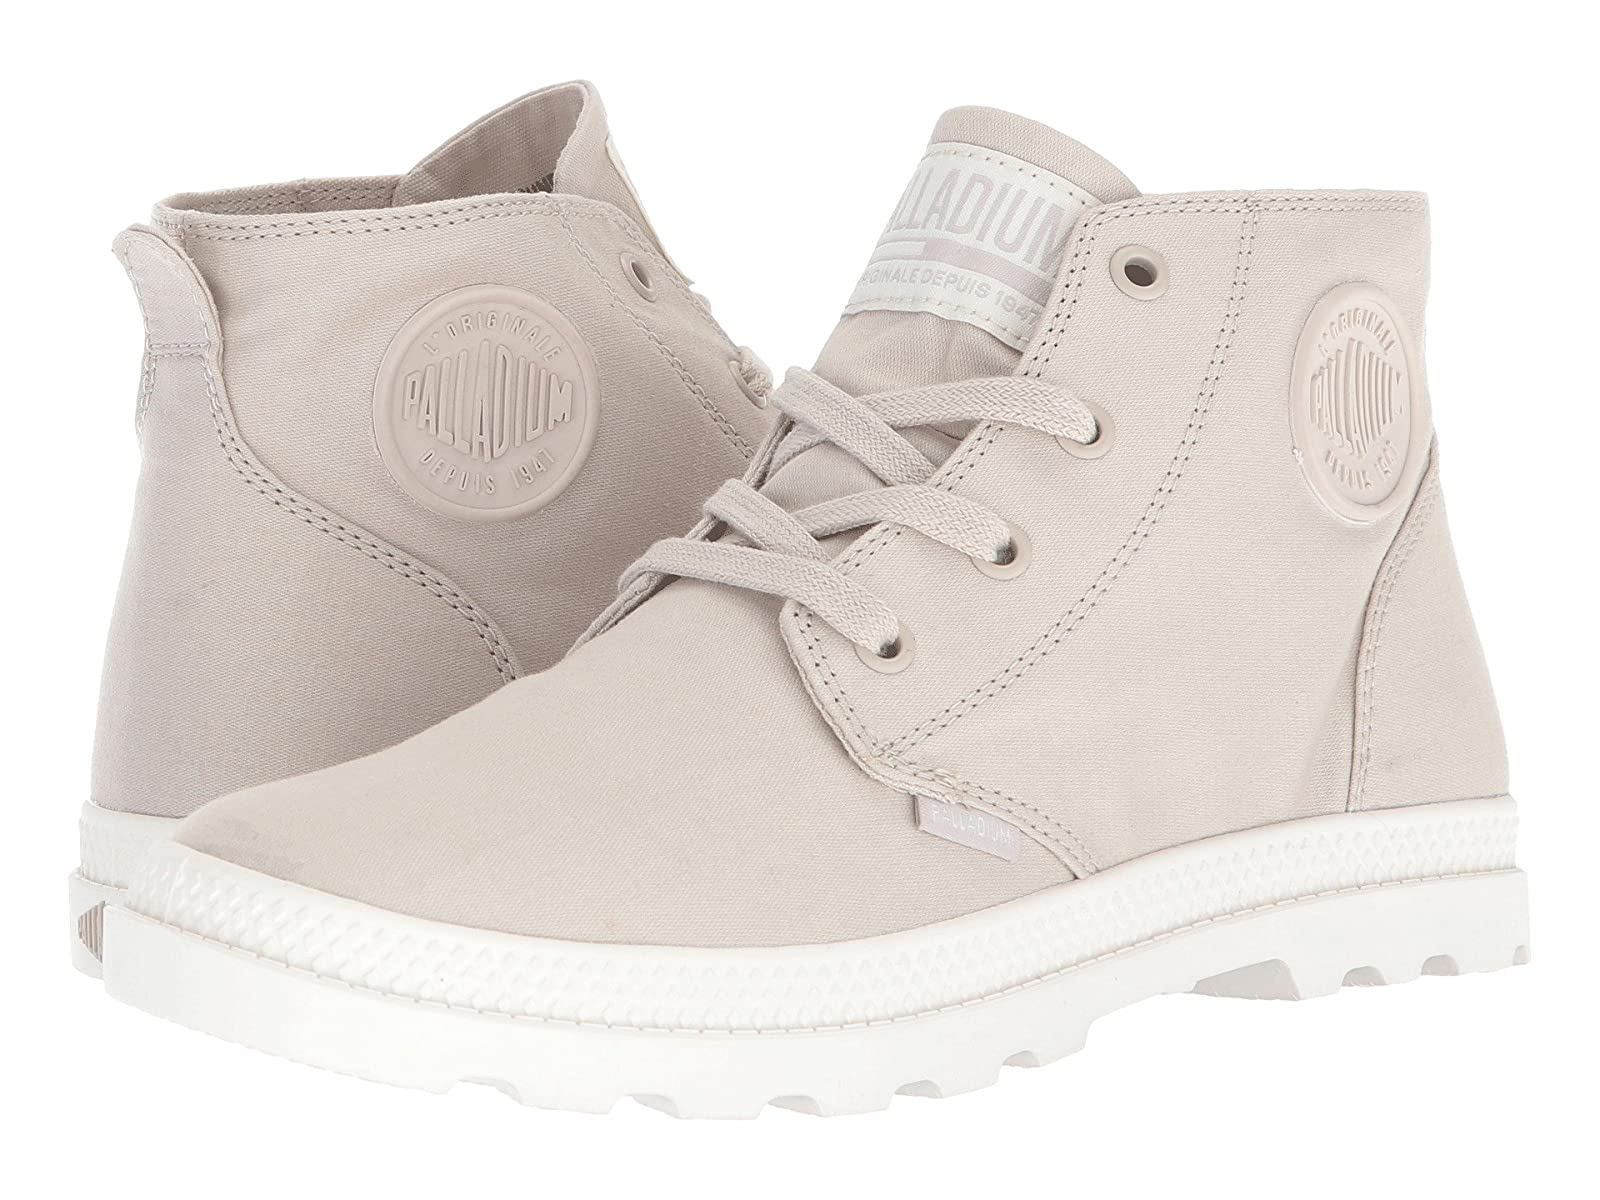 Palladium Pampa Free CVSAtmospheric grades have affordable shoes